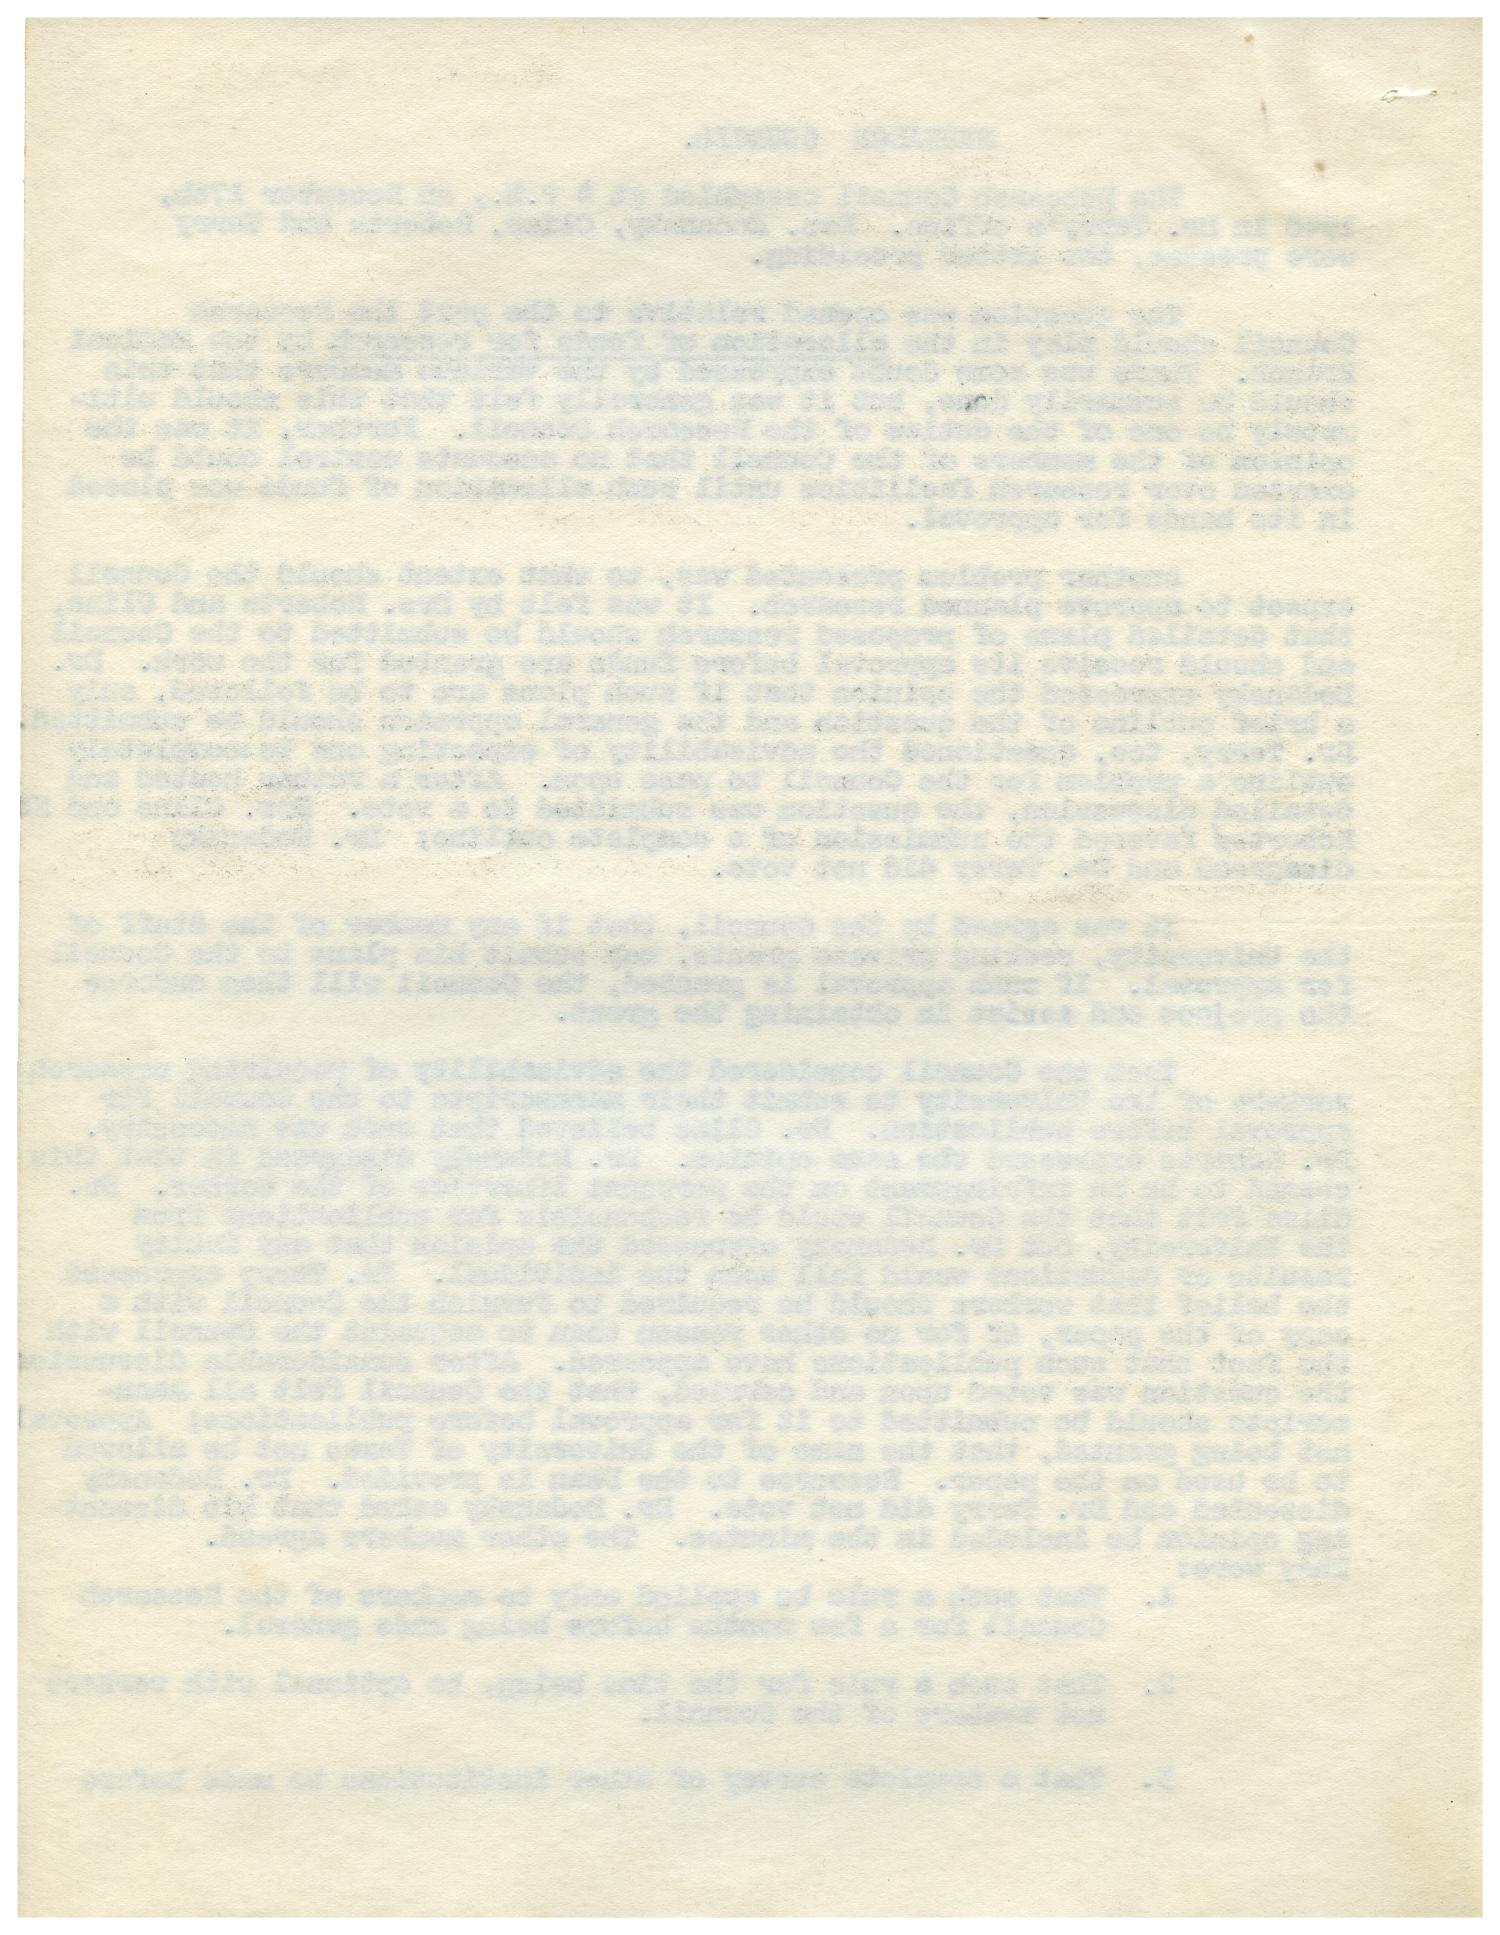 [Minutes for Research Council - December 17, 1940]                                                                                                      [Sequence #]: 2 of 4